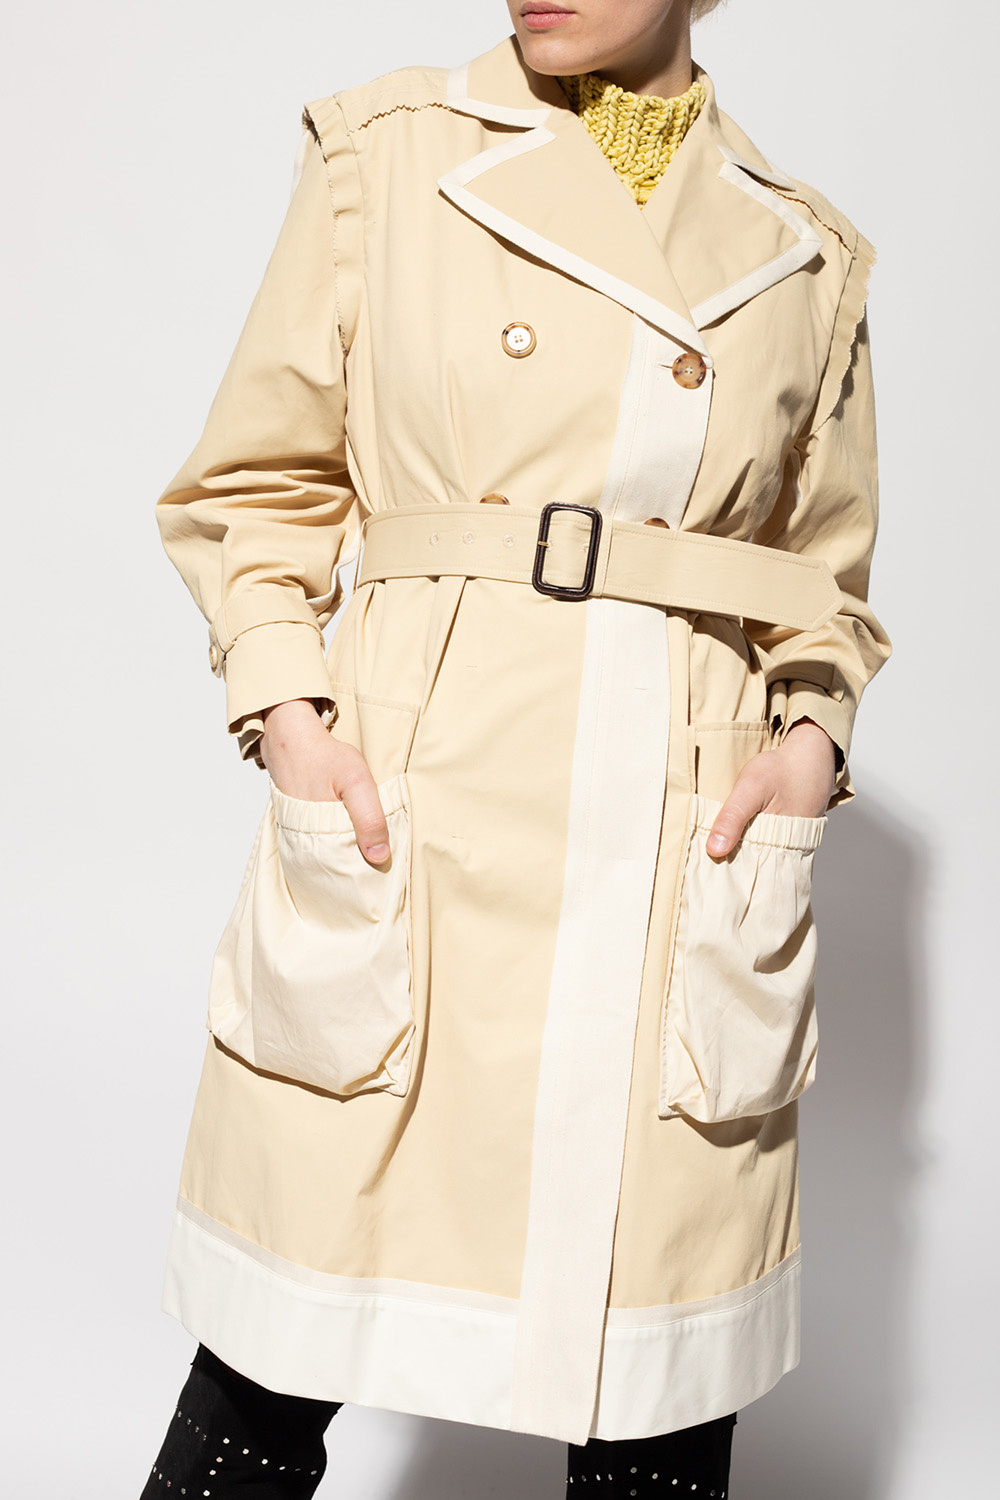 Moschino Double-breasted trench